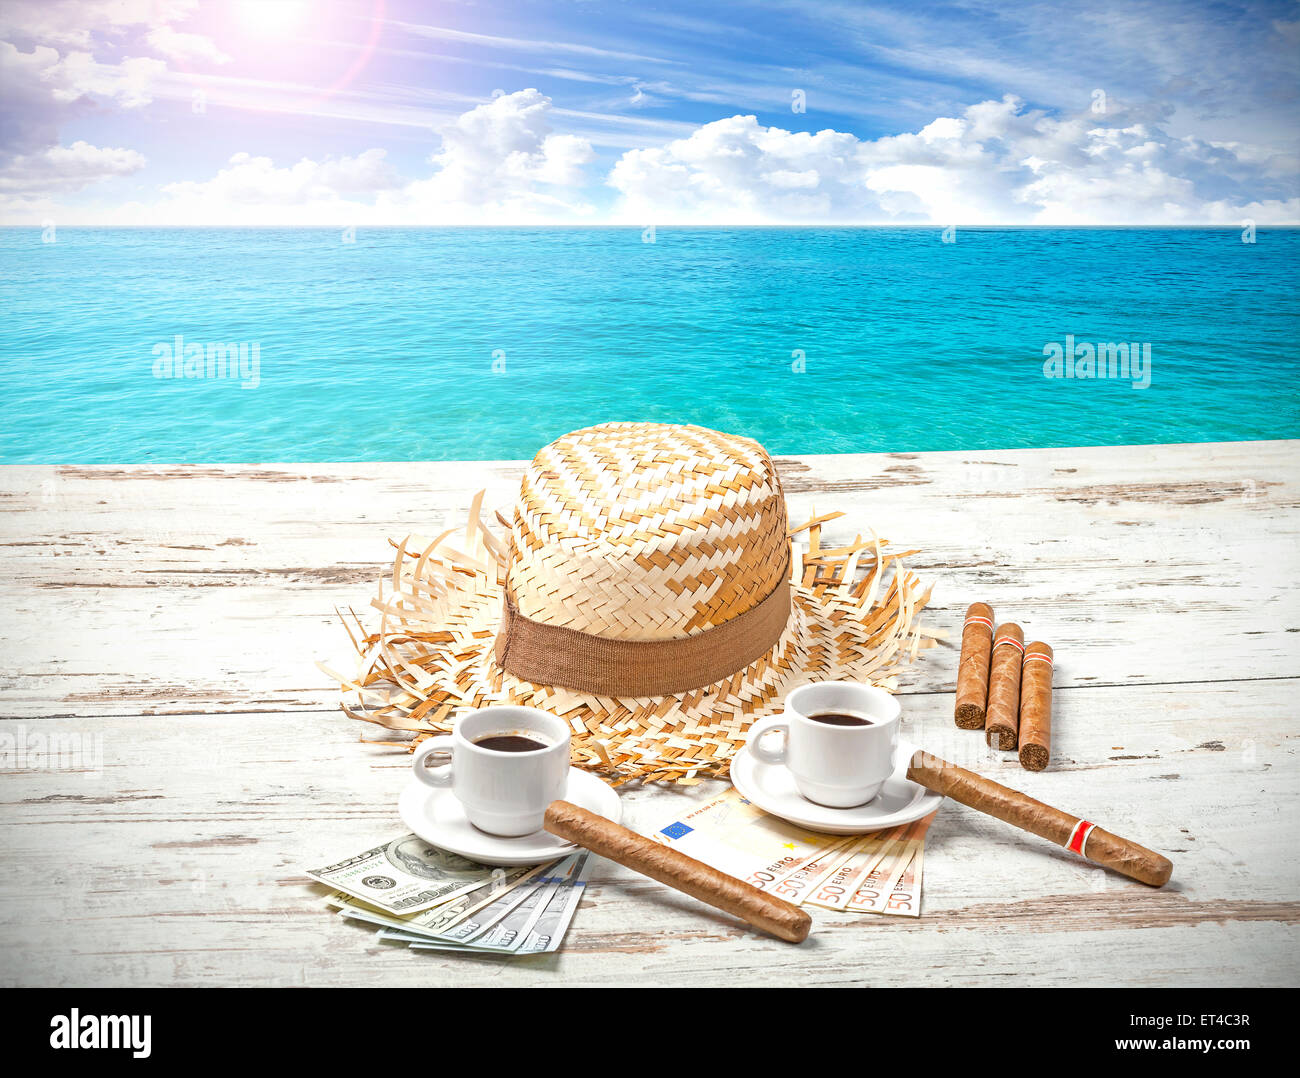 Coffees, cigars, money and hat on wooden beach table. Summer adventure concept. - Stock Image